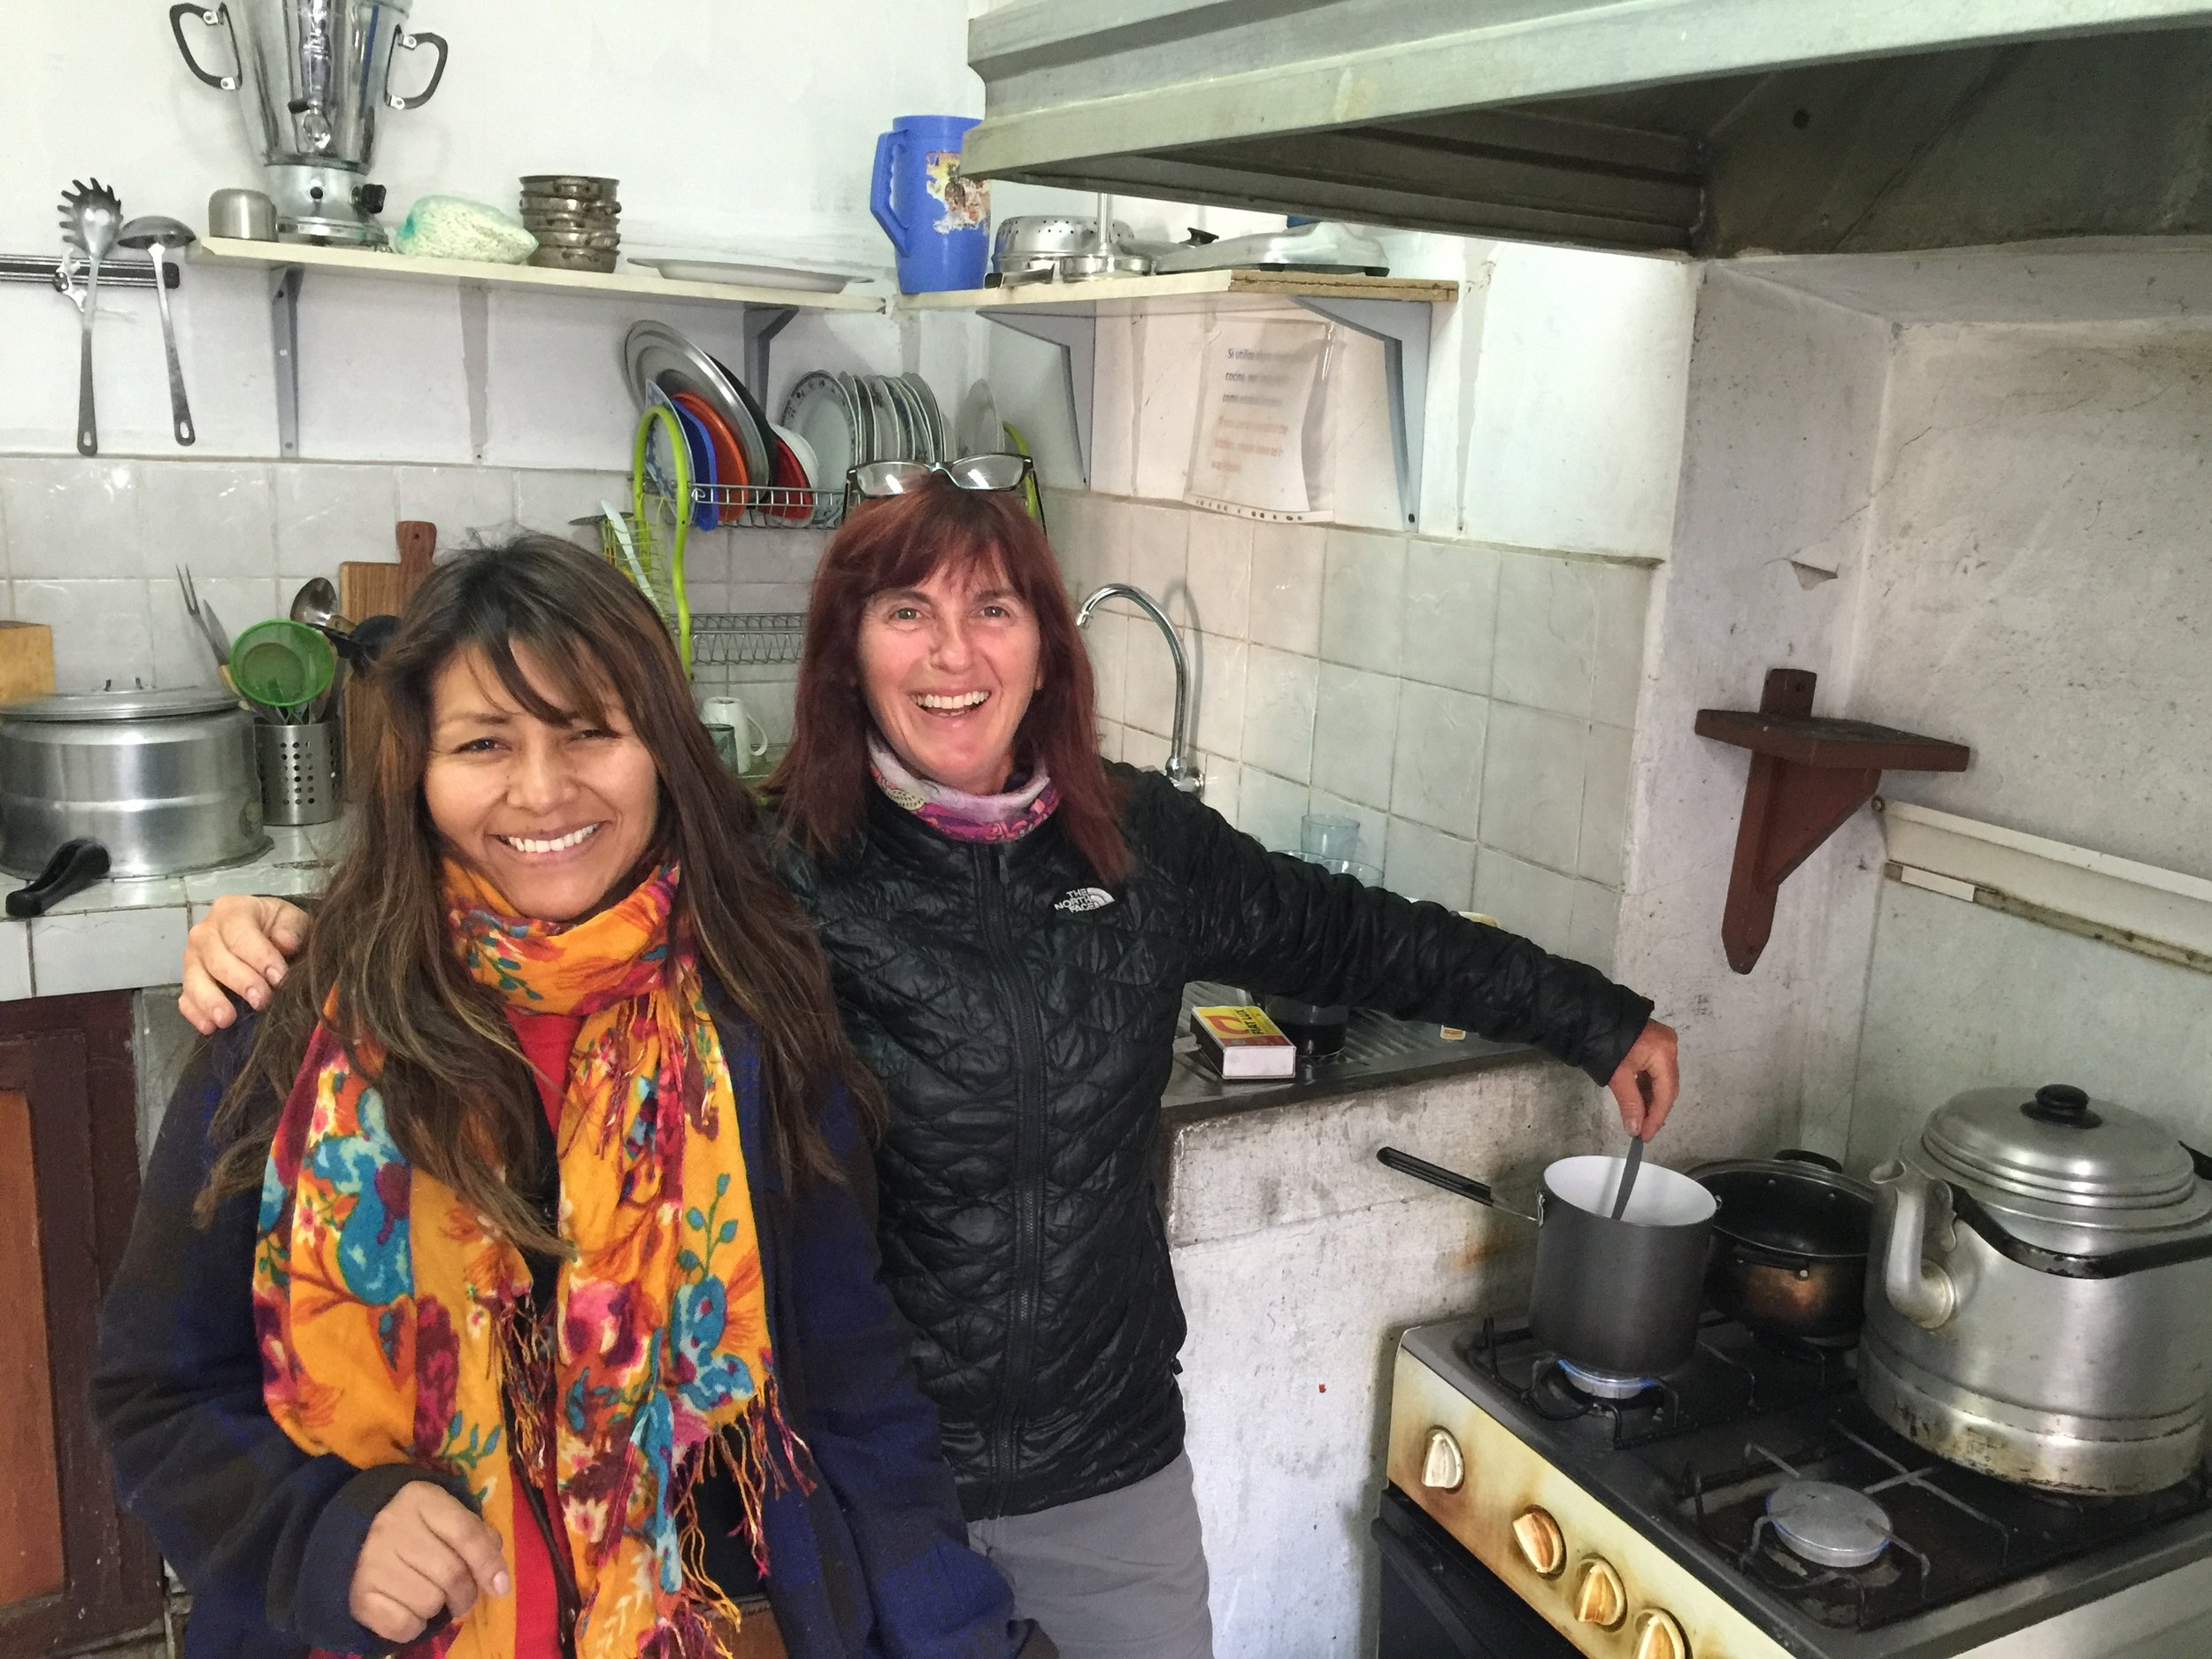 Our hostess in Potosi, helping us make breakfast in her kitchen.